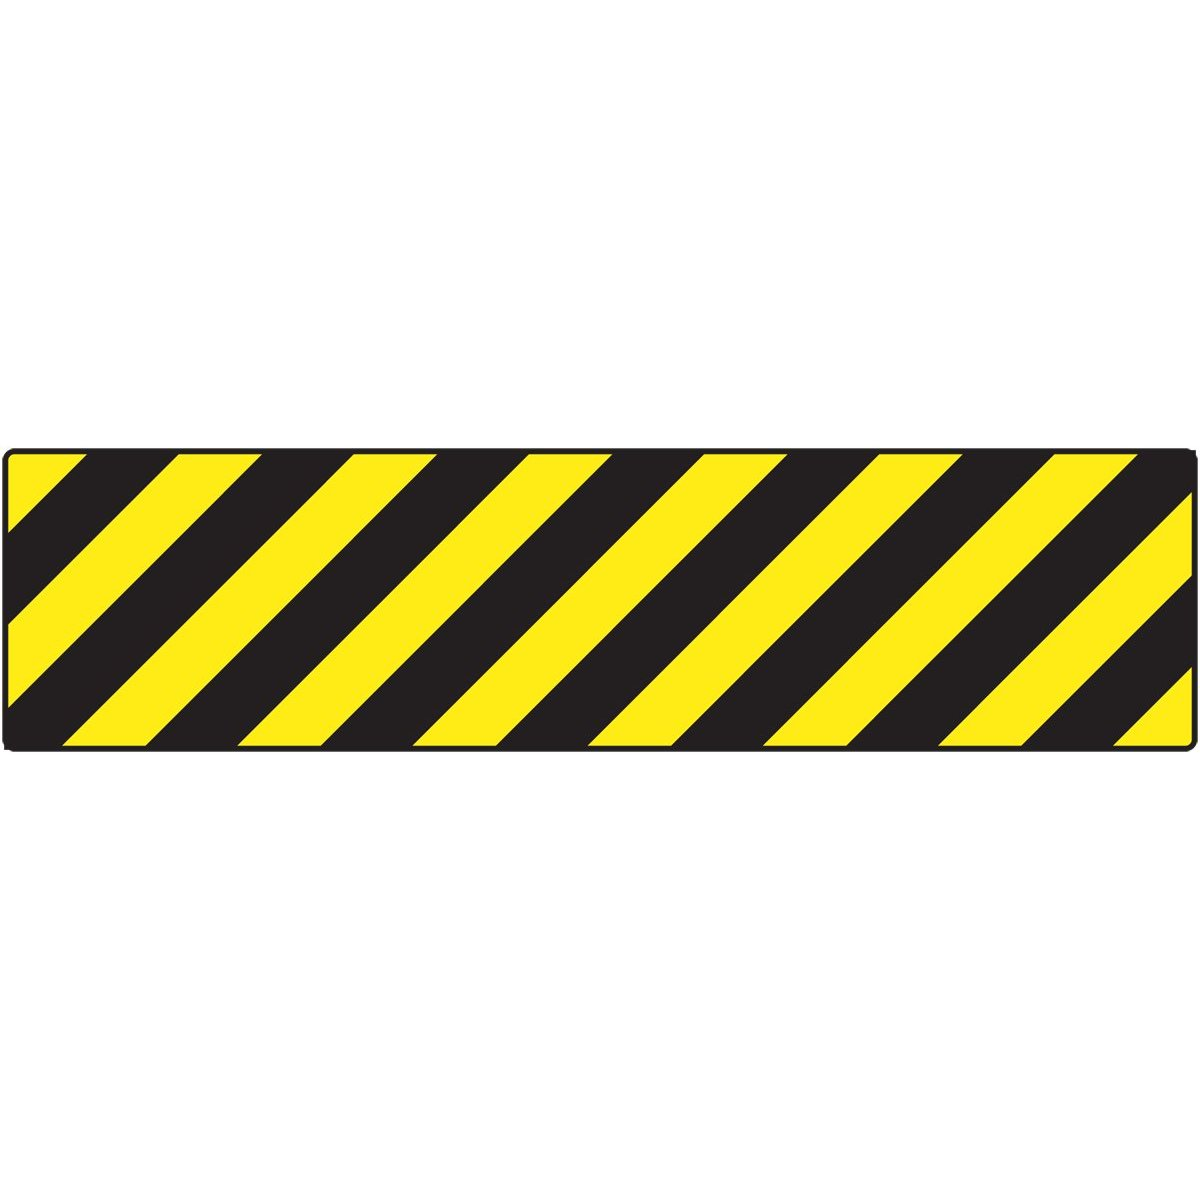 1200x1200 Caution Tape Clip Art Many Interesting Cliparts